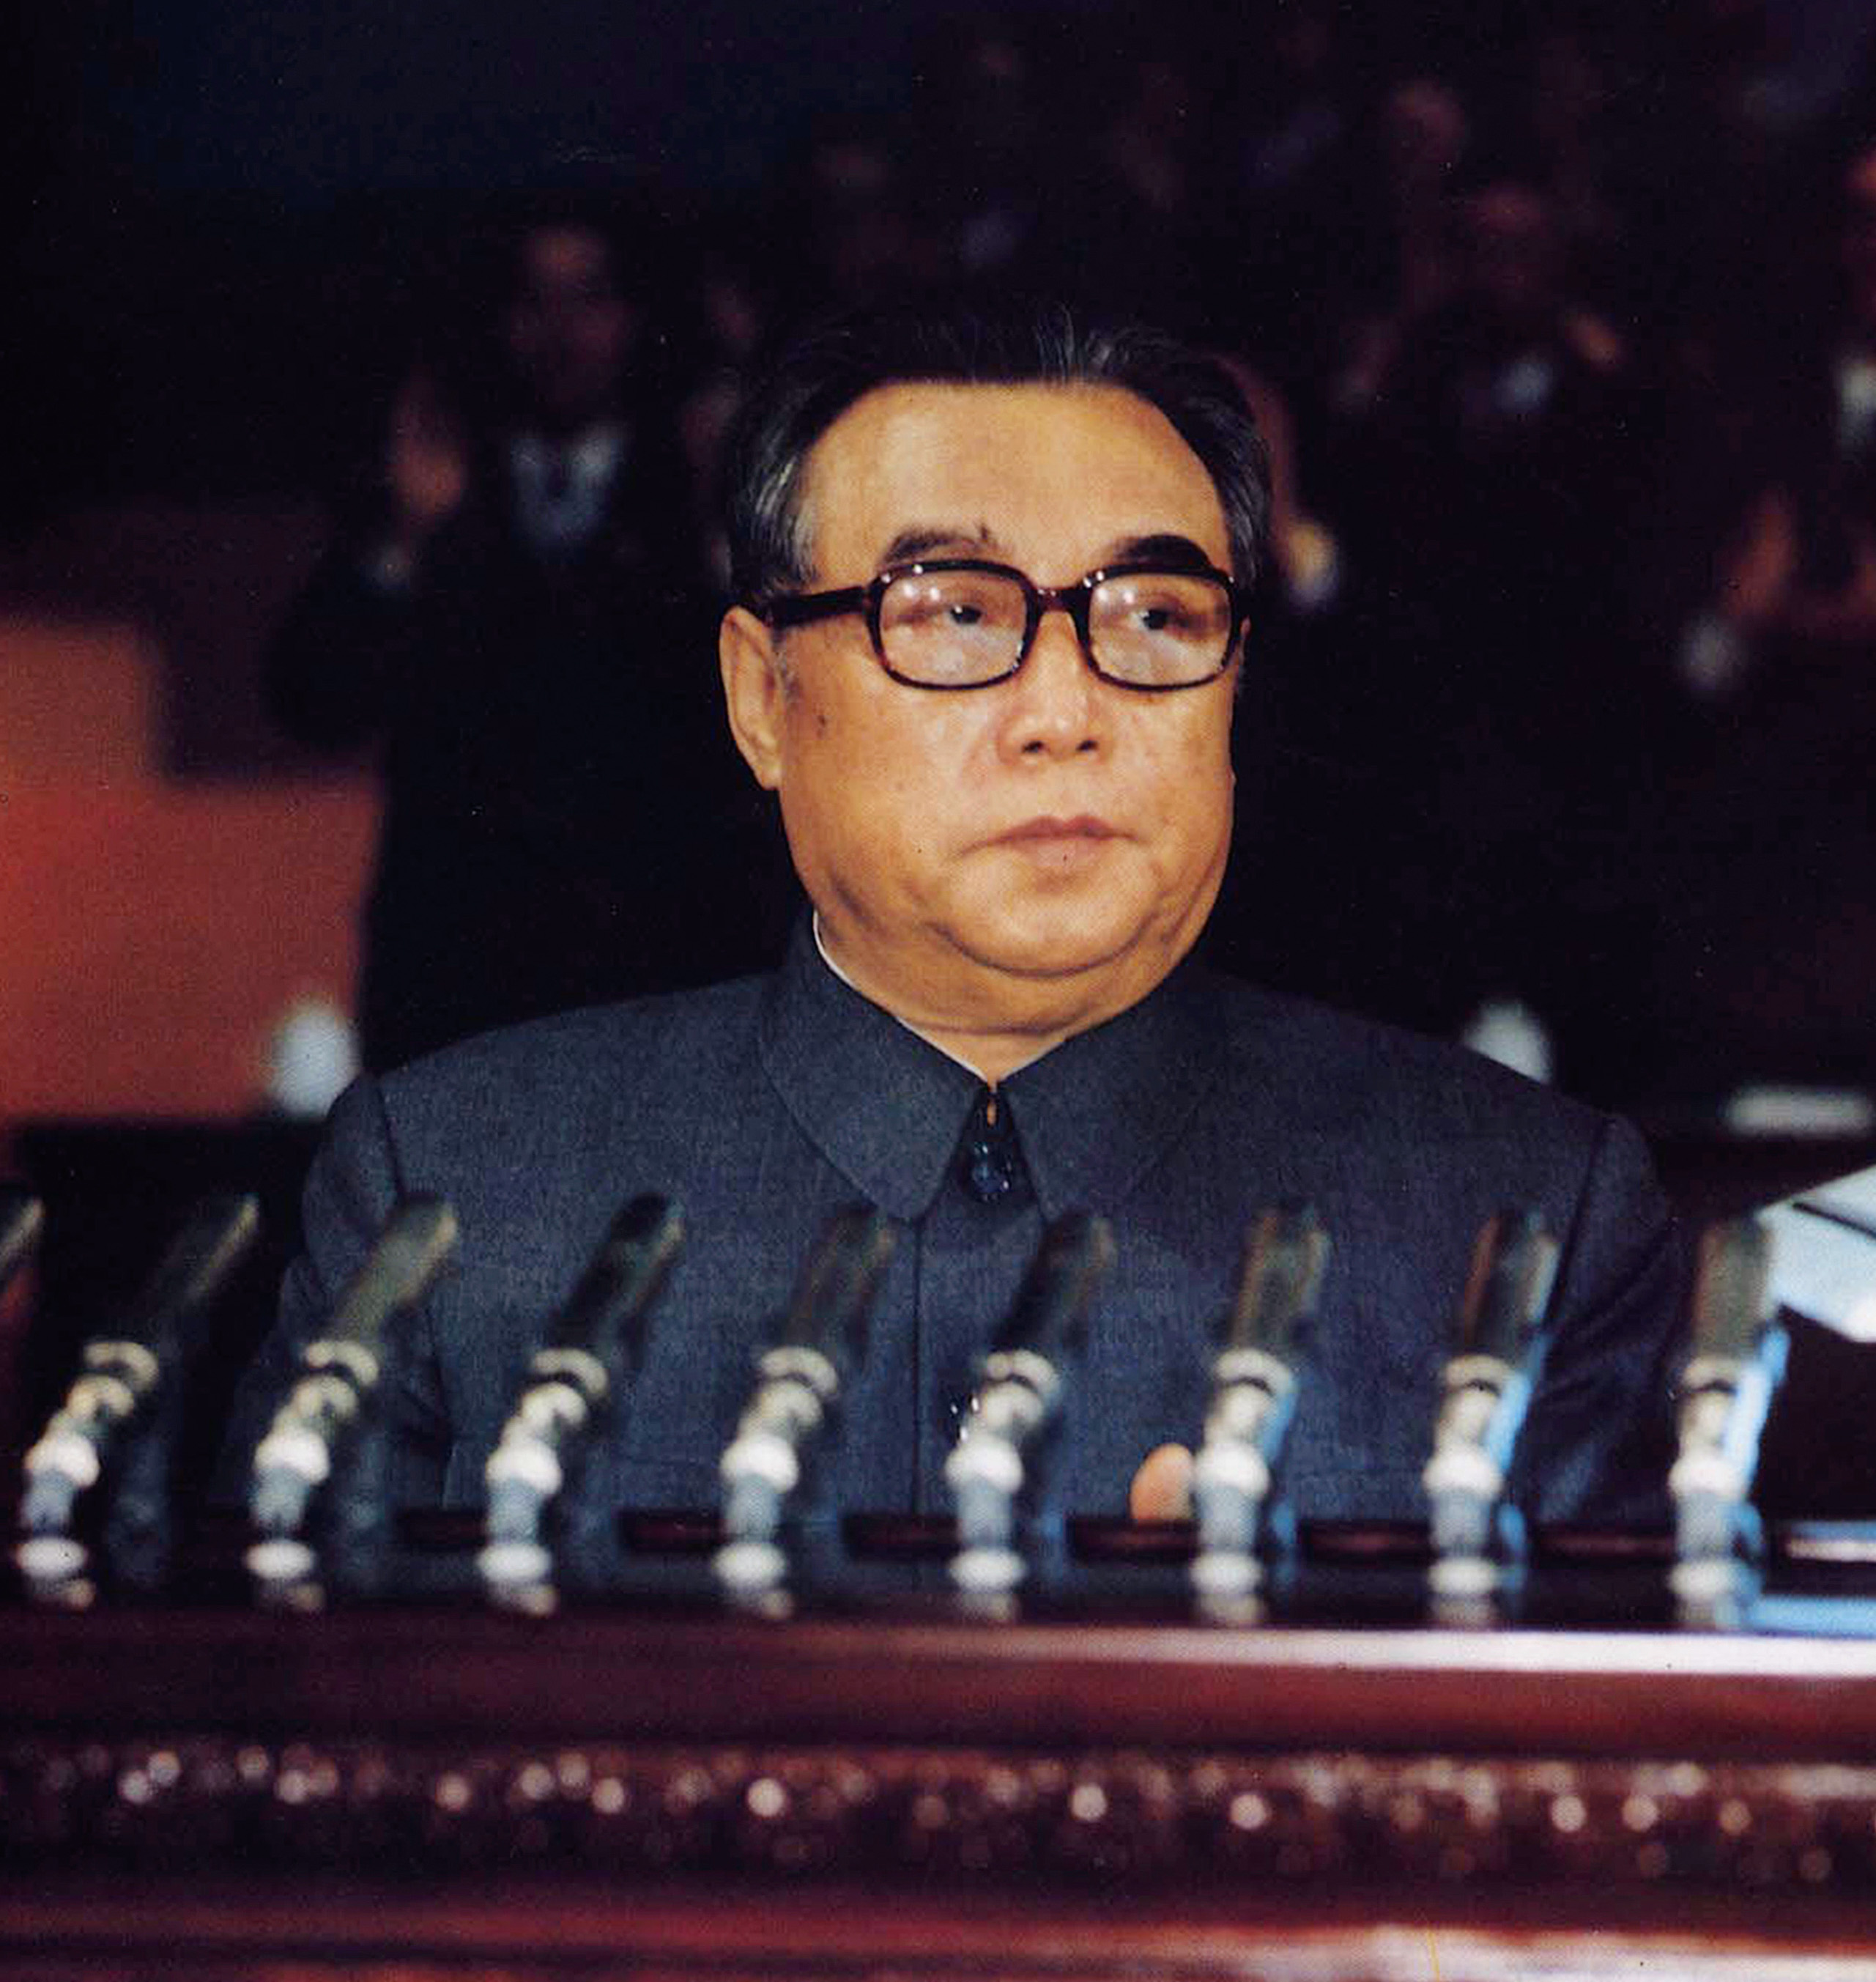 In this Oct. 10, 1980 photo provided by the Korea News Service (KNS), then North Korean leader Kim Il Sung addresses a convention of North Korea's Workers' Party in Pyongyang, North Korea. North Korea, the world's last great master of socialist spectacle, is likely to deliver a big one when its ruling party holds its first congress in 36 years later this week, scheduled to begin on Friday, May 6, 2016. (Korea News Service via AP)